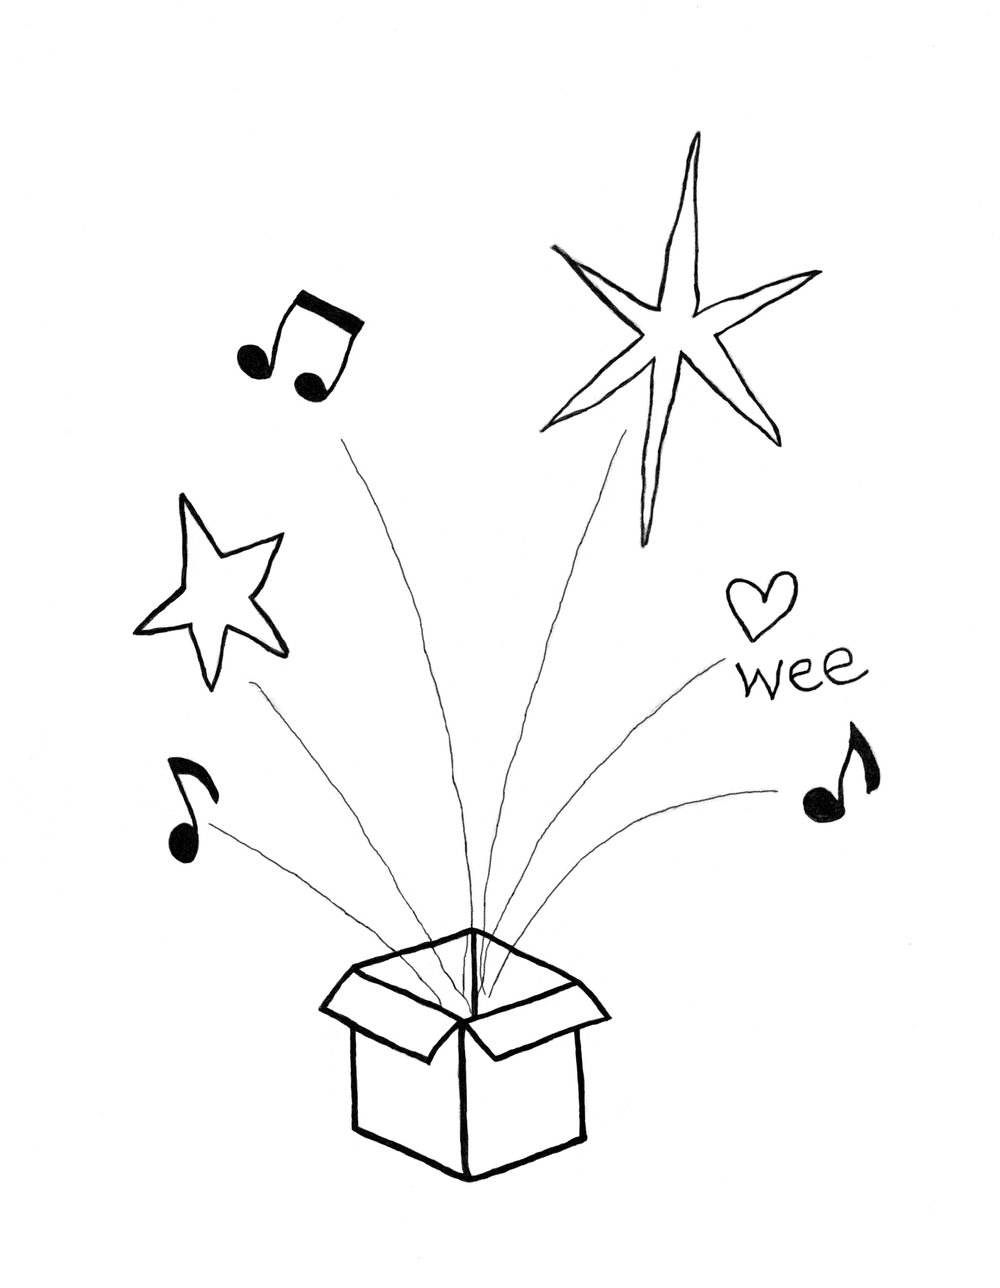 """weeDecember 21-23, 2017 - Levine Jewish Community Center of CharlotteLife's greatest gifts can come in the smallest packages. Take time to enjoy a moment with your smallest, and together, experience a story about being little-- What does a """"wee"""" one have to give?"""